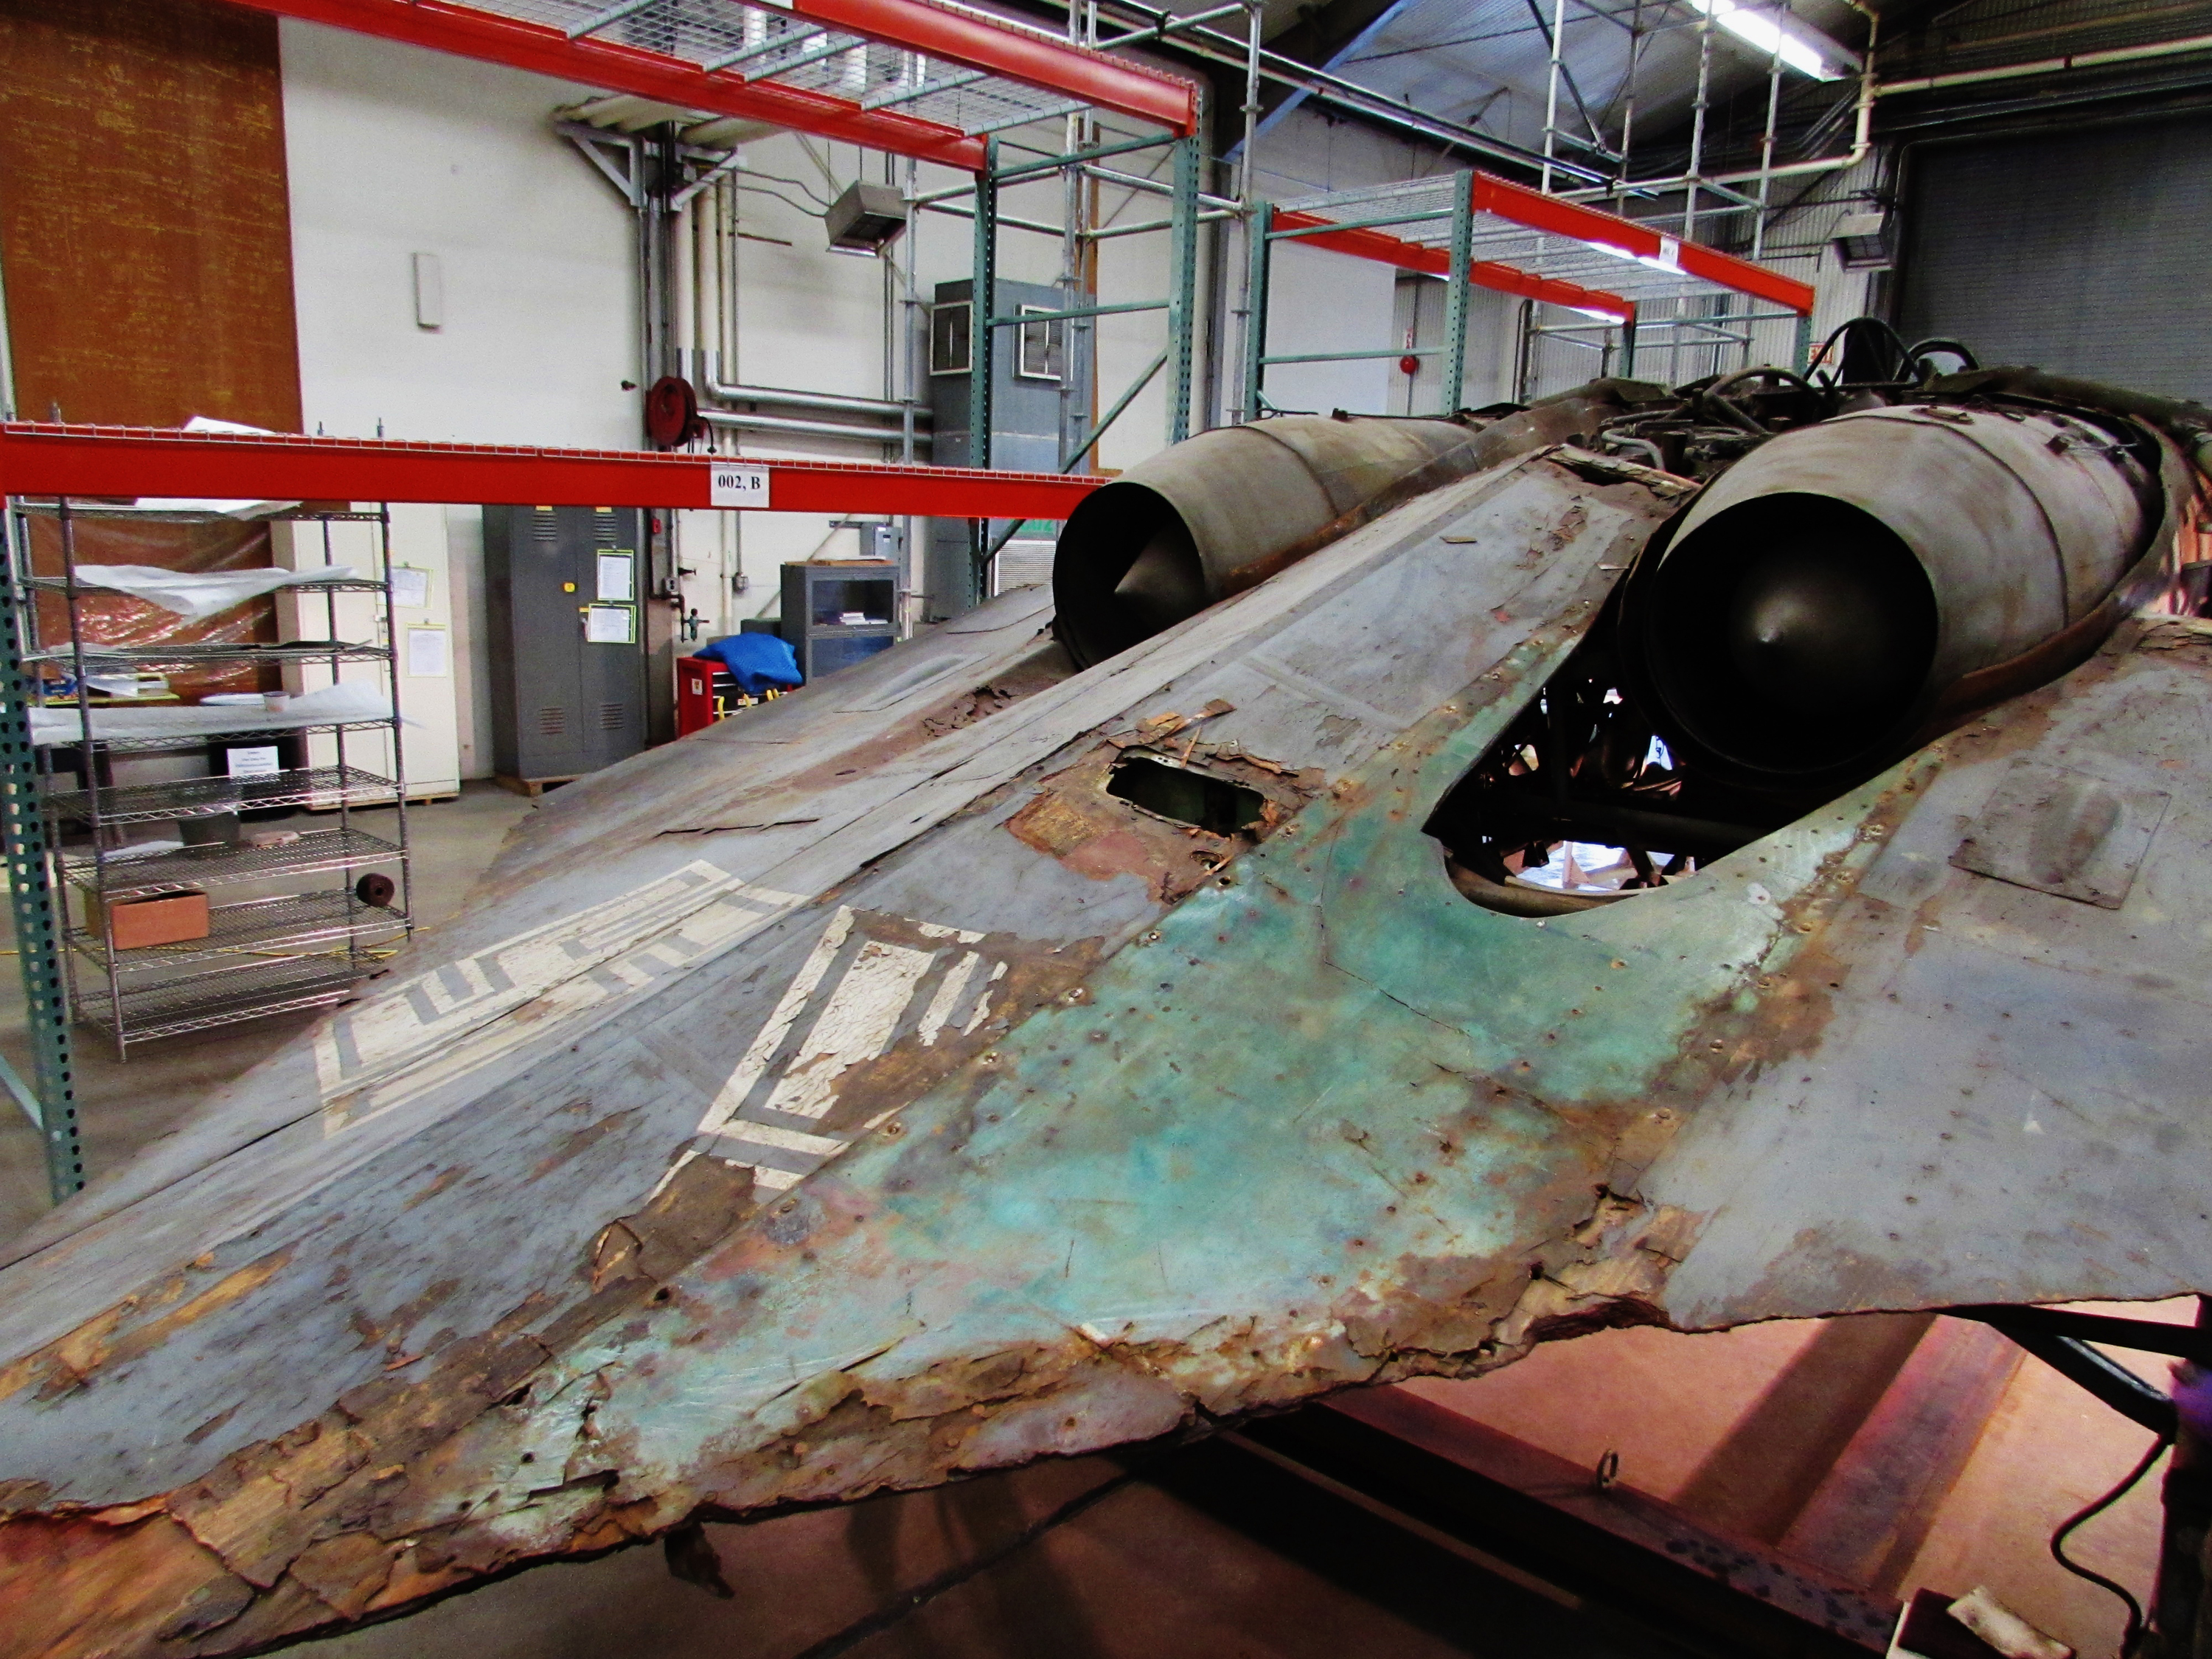 Tail of Horten